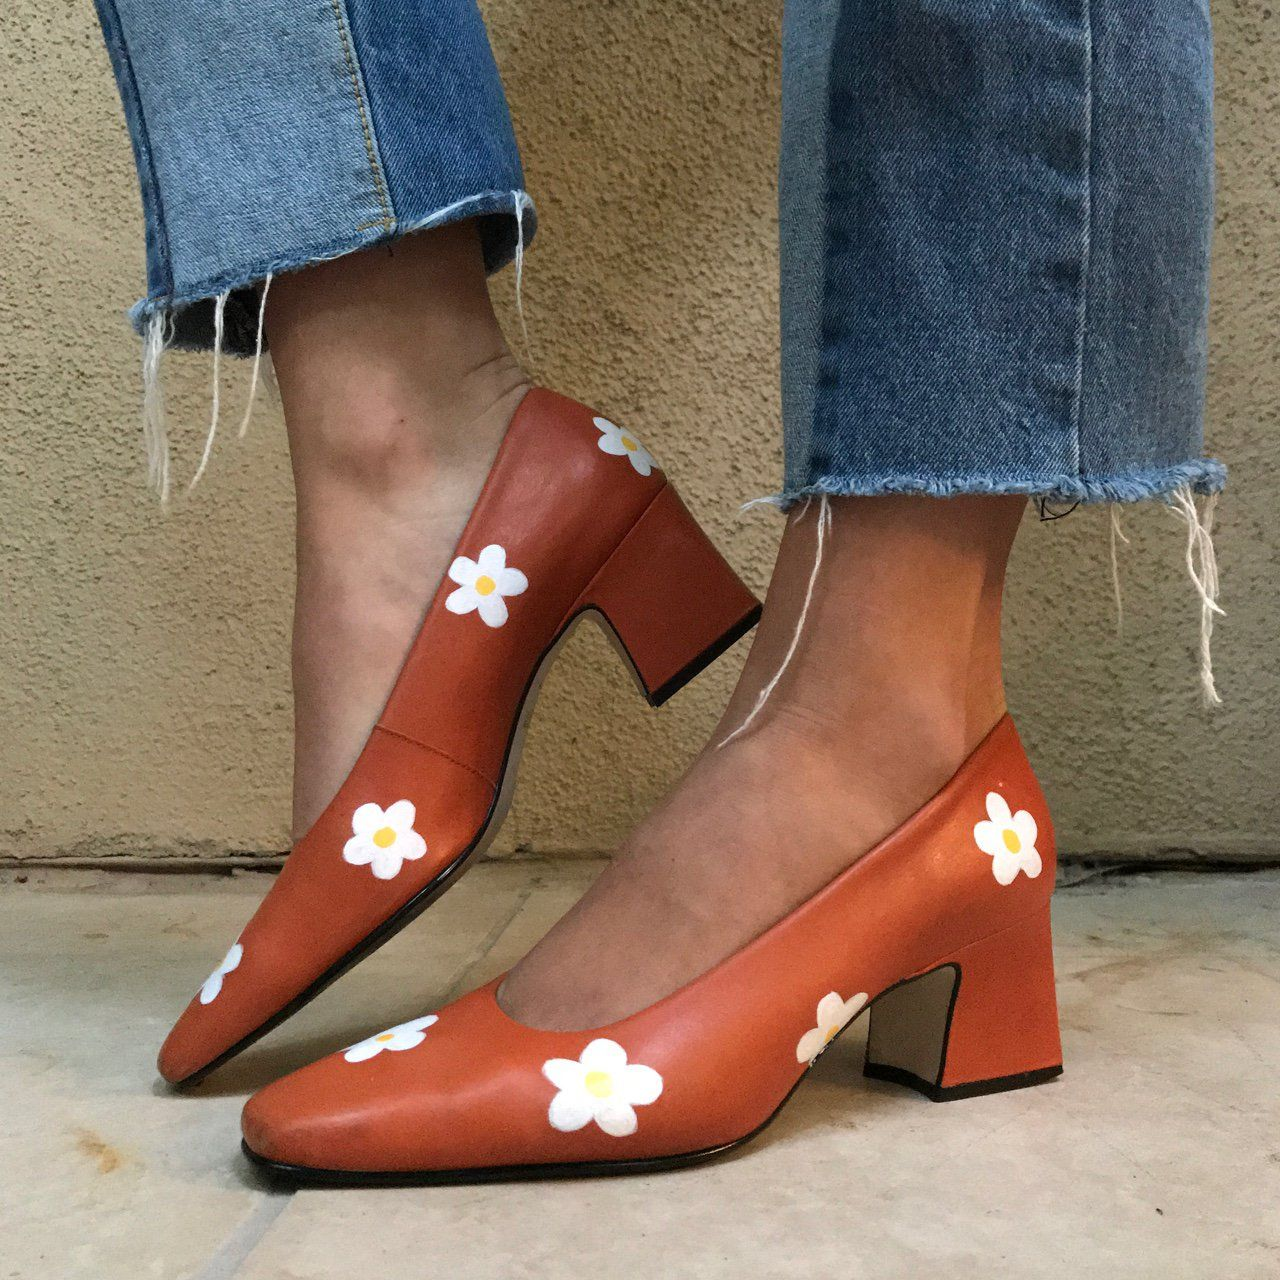 72a075ca5882 ON HOLD DO NOT BUY i absolutely adore this pair of hand painted white daisy  burnt orange office pumps 🌼 100% unique hand painted by me! you will be  the ...